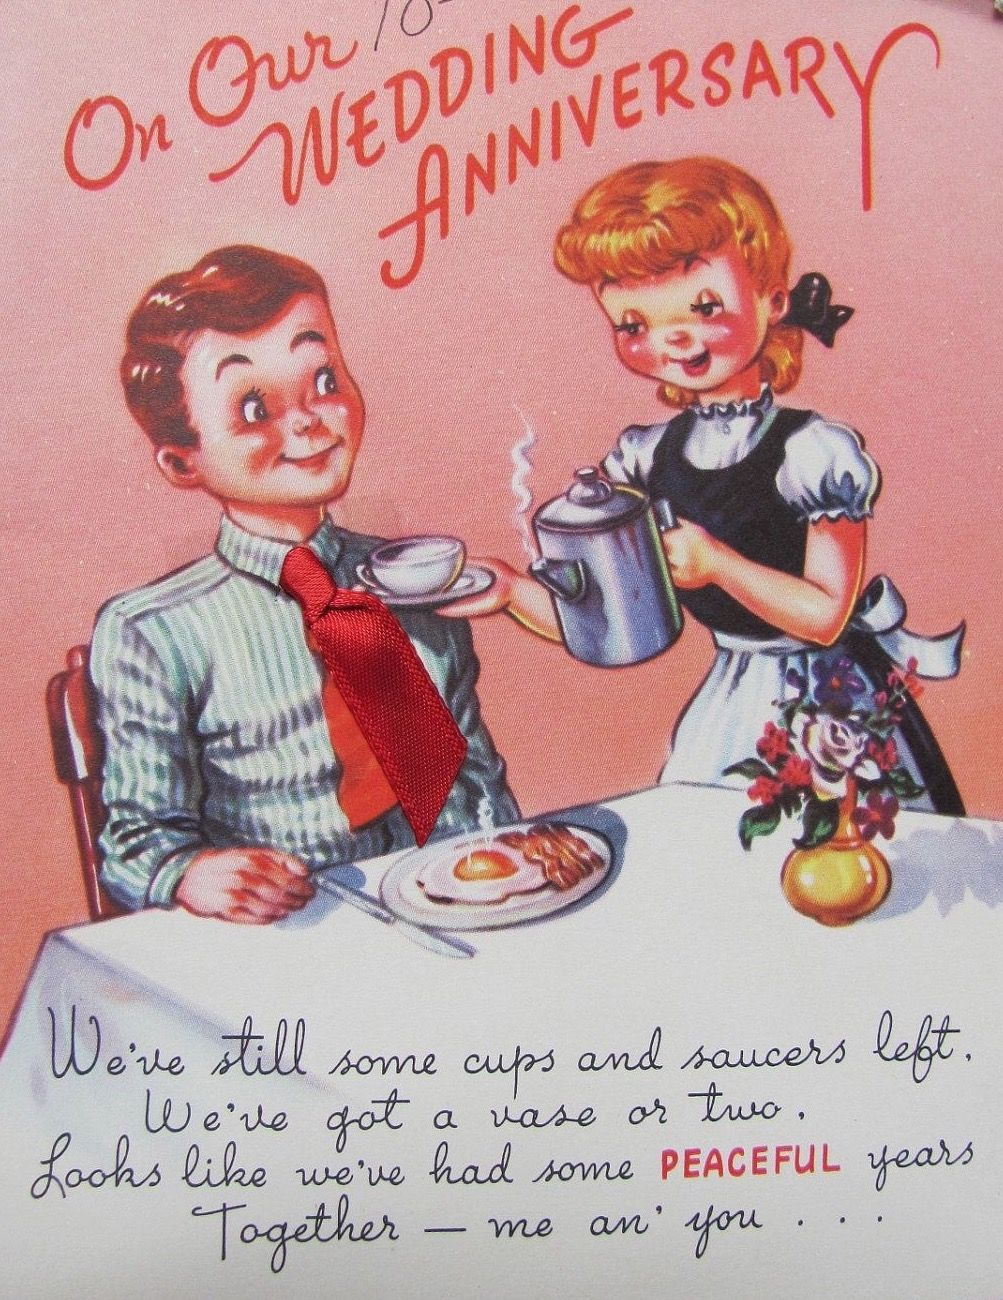 Pin By Daniele On Vintage Anniversary Cards Pinterest Vintage